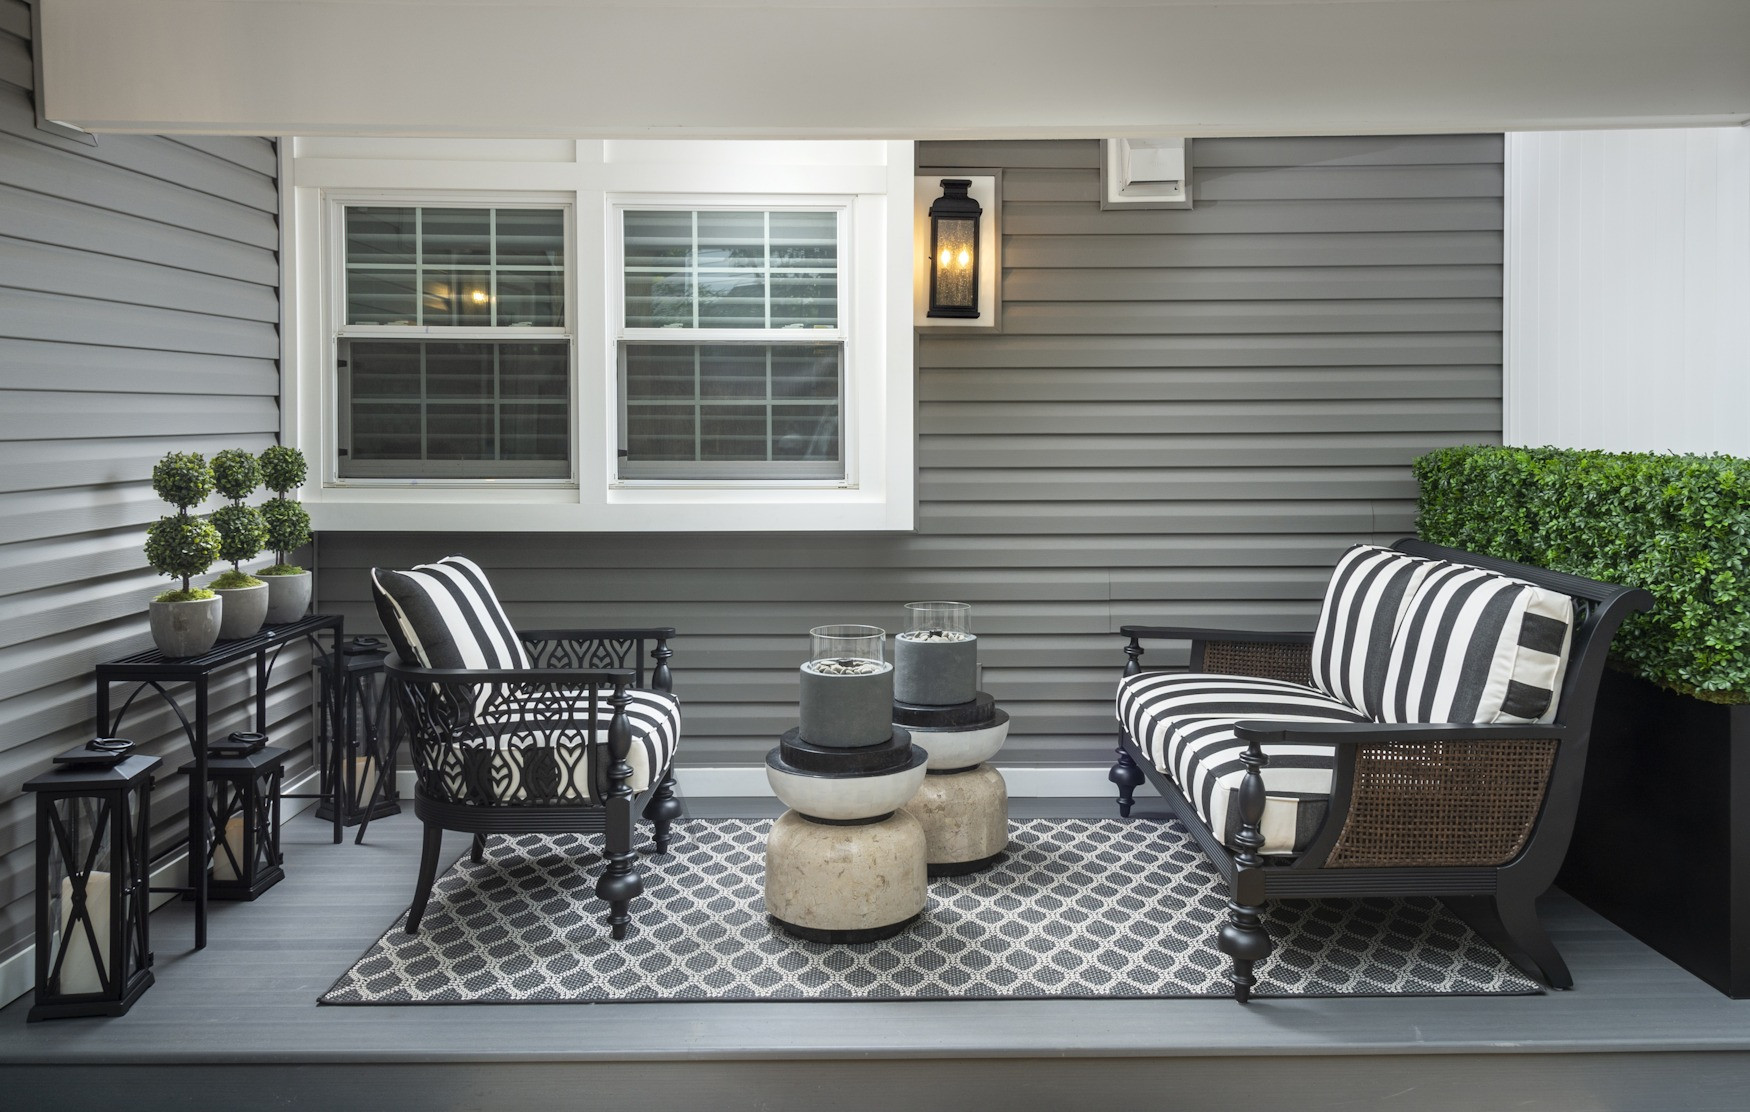 Wynnewood, PA: Modern Black & White Outdoor Furniture